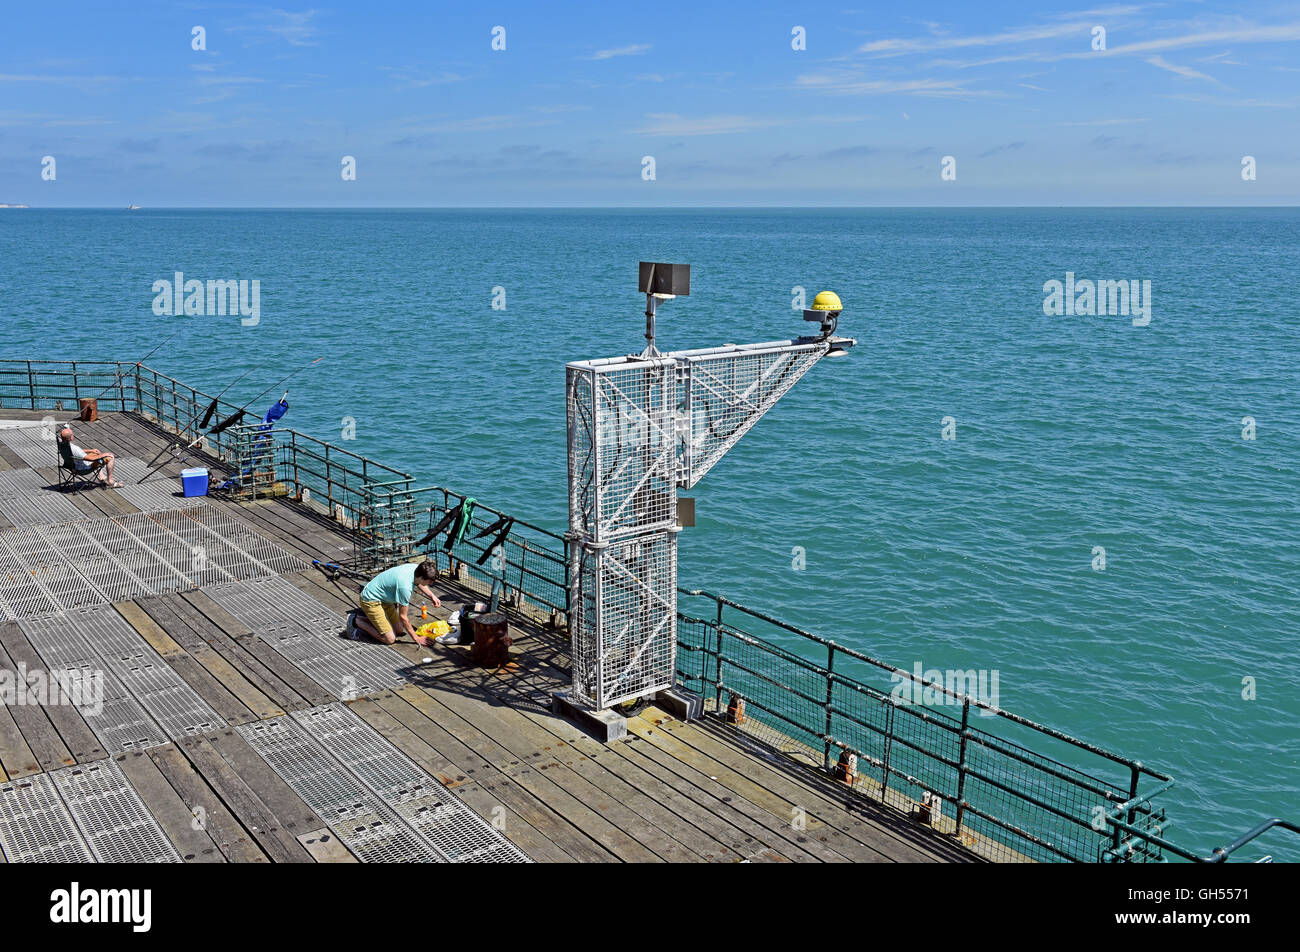 People Fishing Off The Pier On The English Coast At Deal In Kent